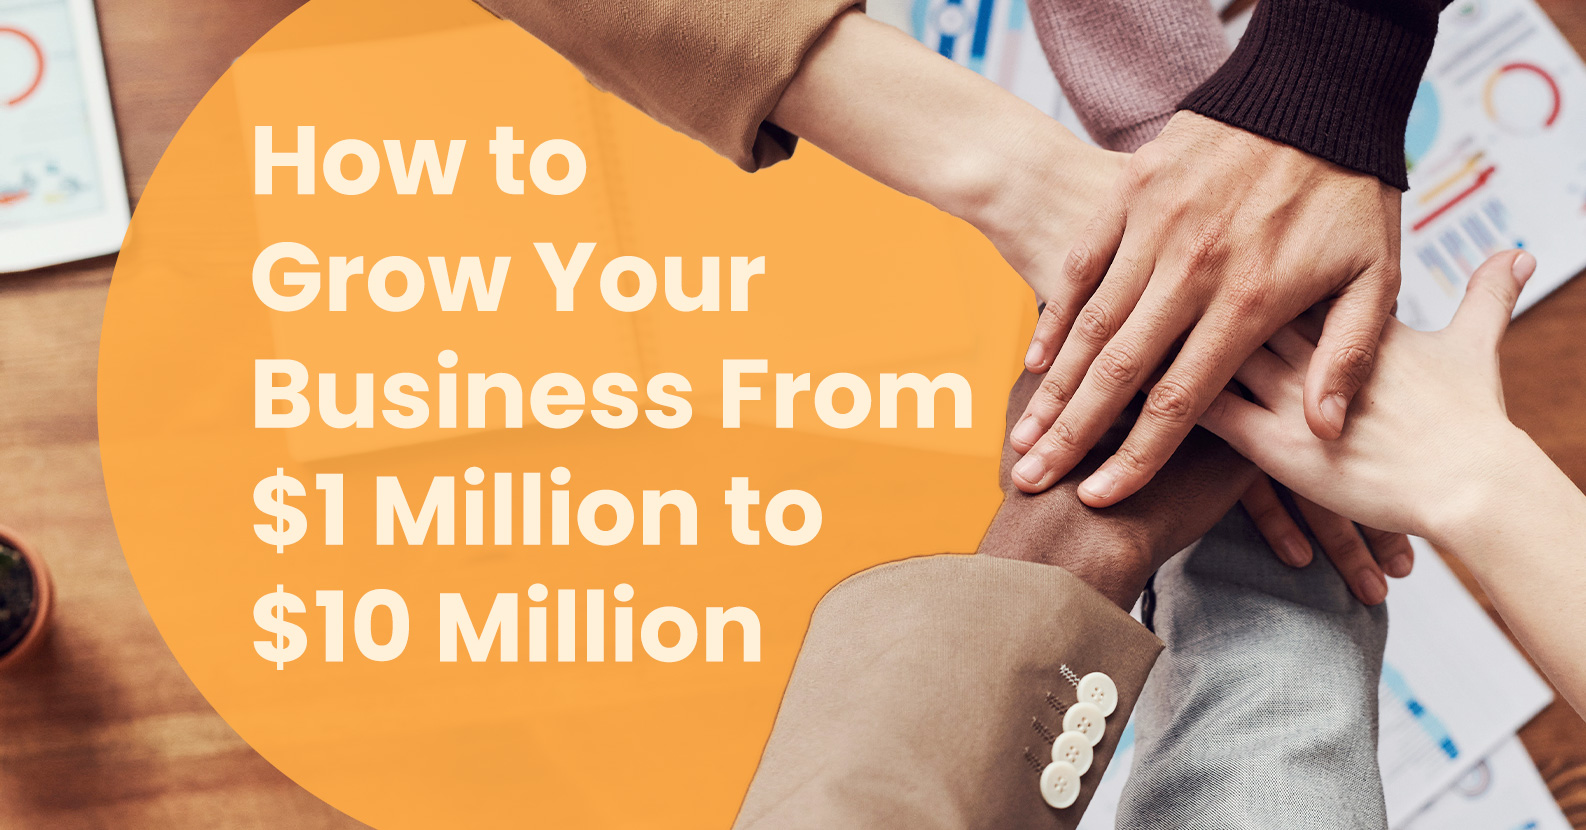 How to Grow Your Business From $1 Million to $10 Million